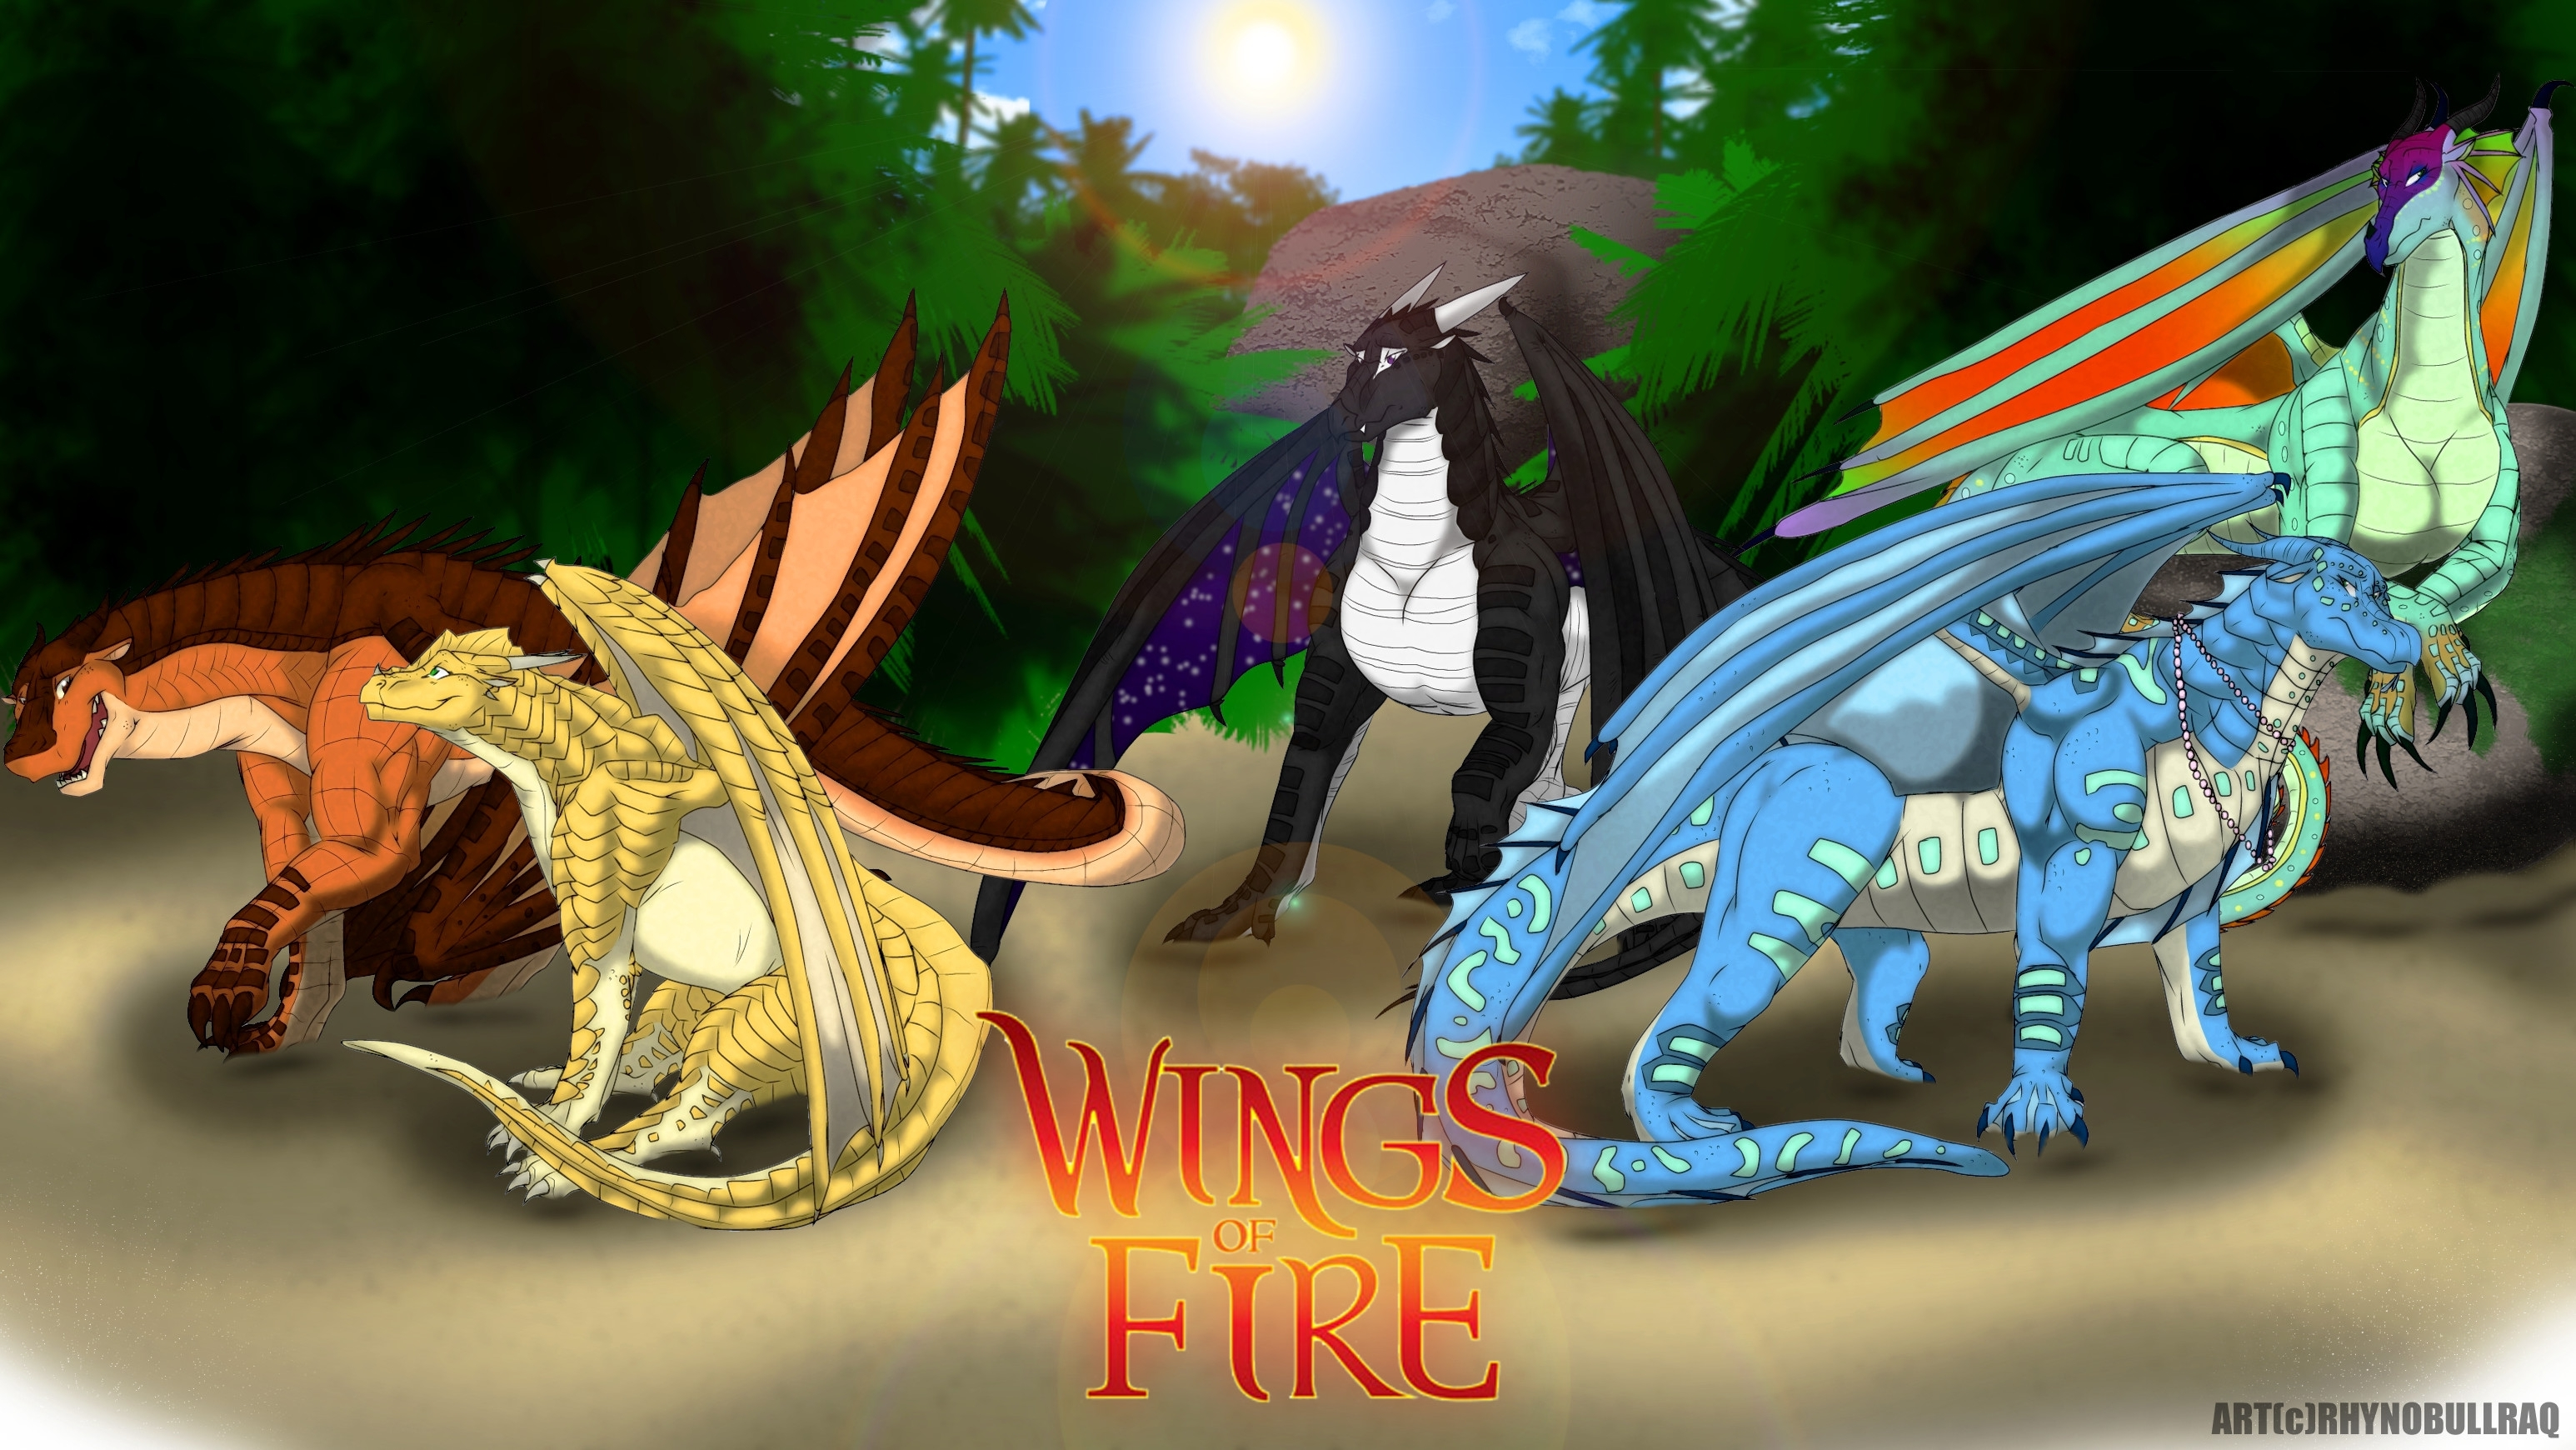 wings of fire wallpaper (79+ images)